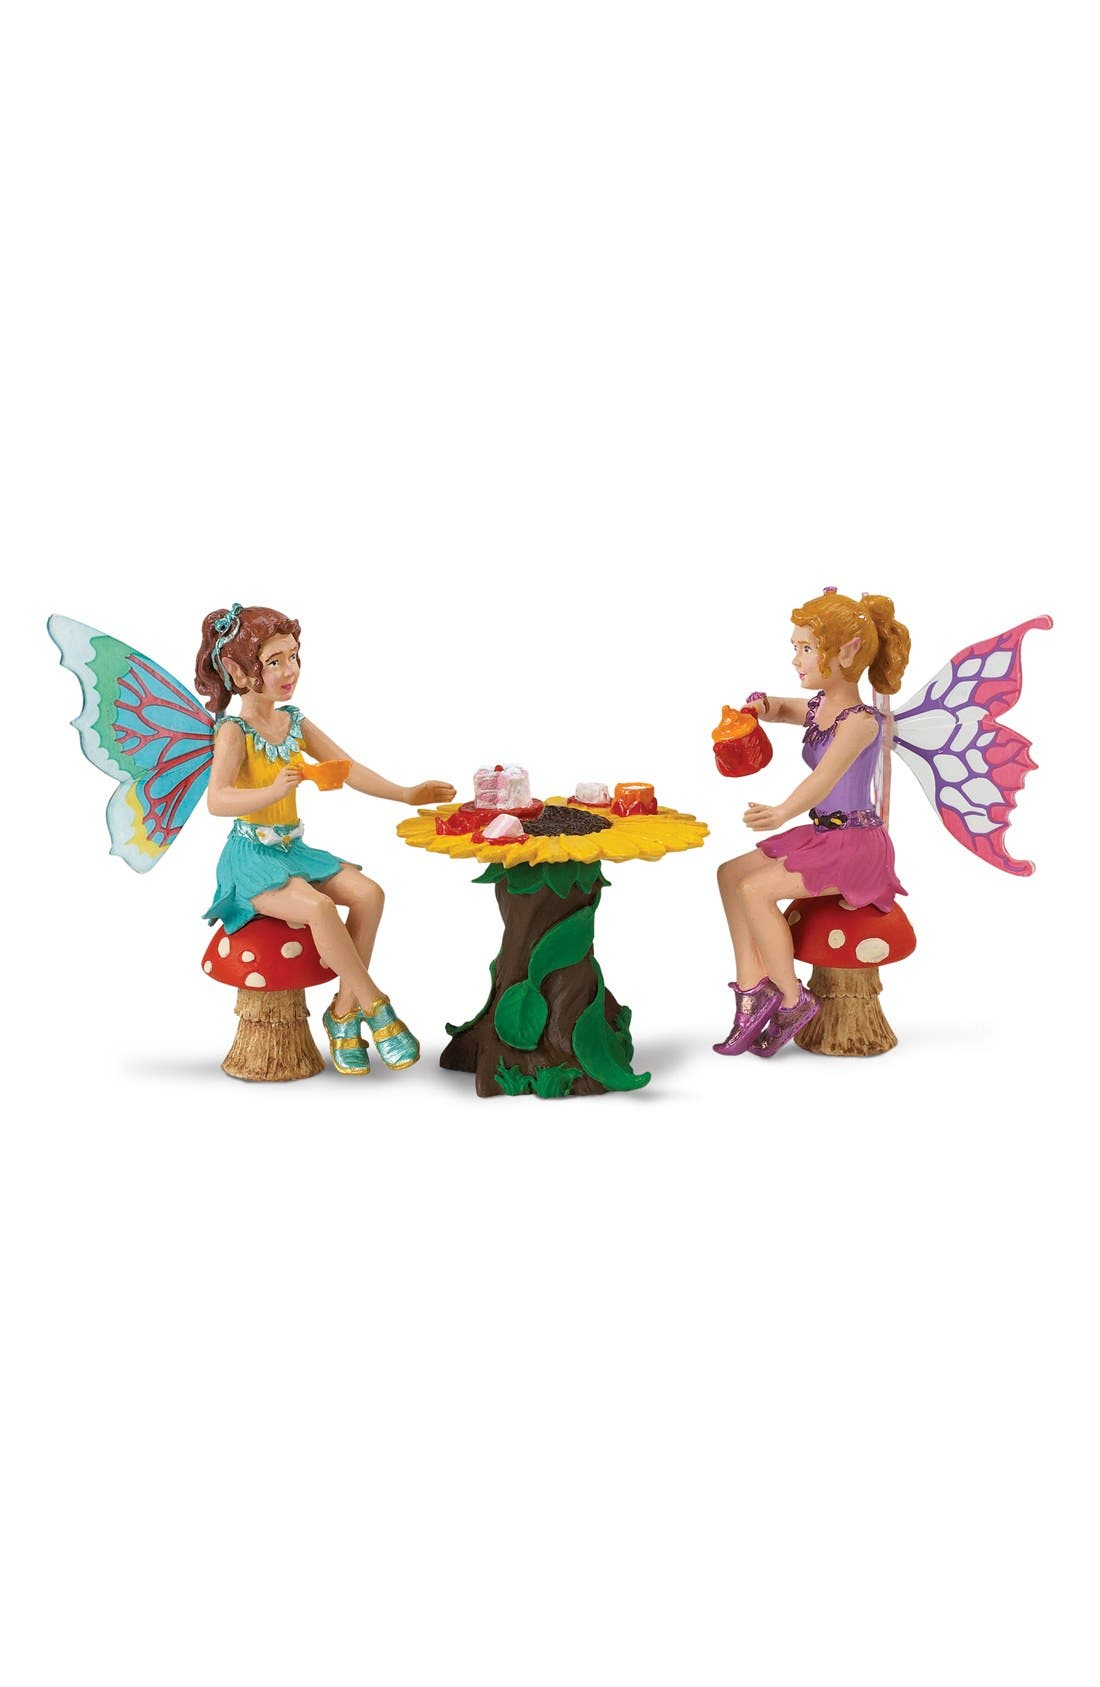 Tea Party Fairy Figurines,                             Main thumbnail 1, color,                             NO COLOR